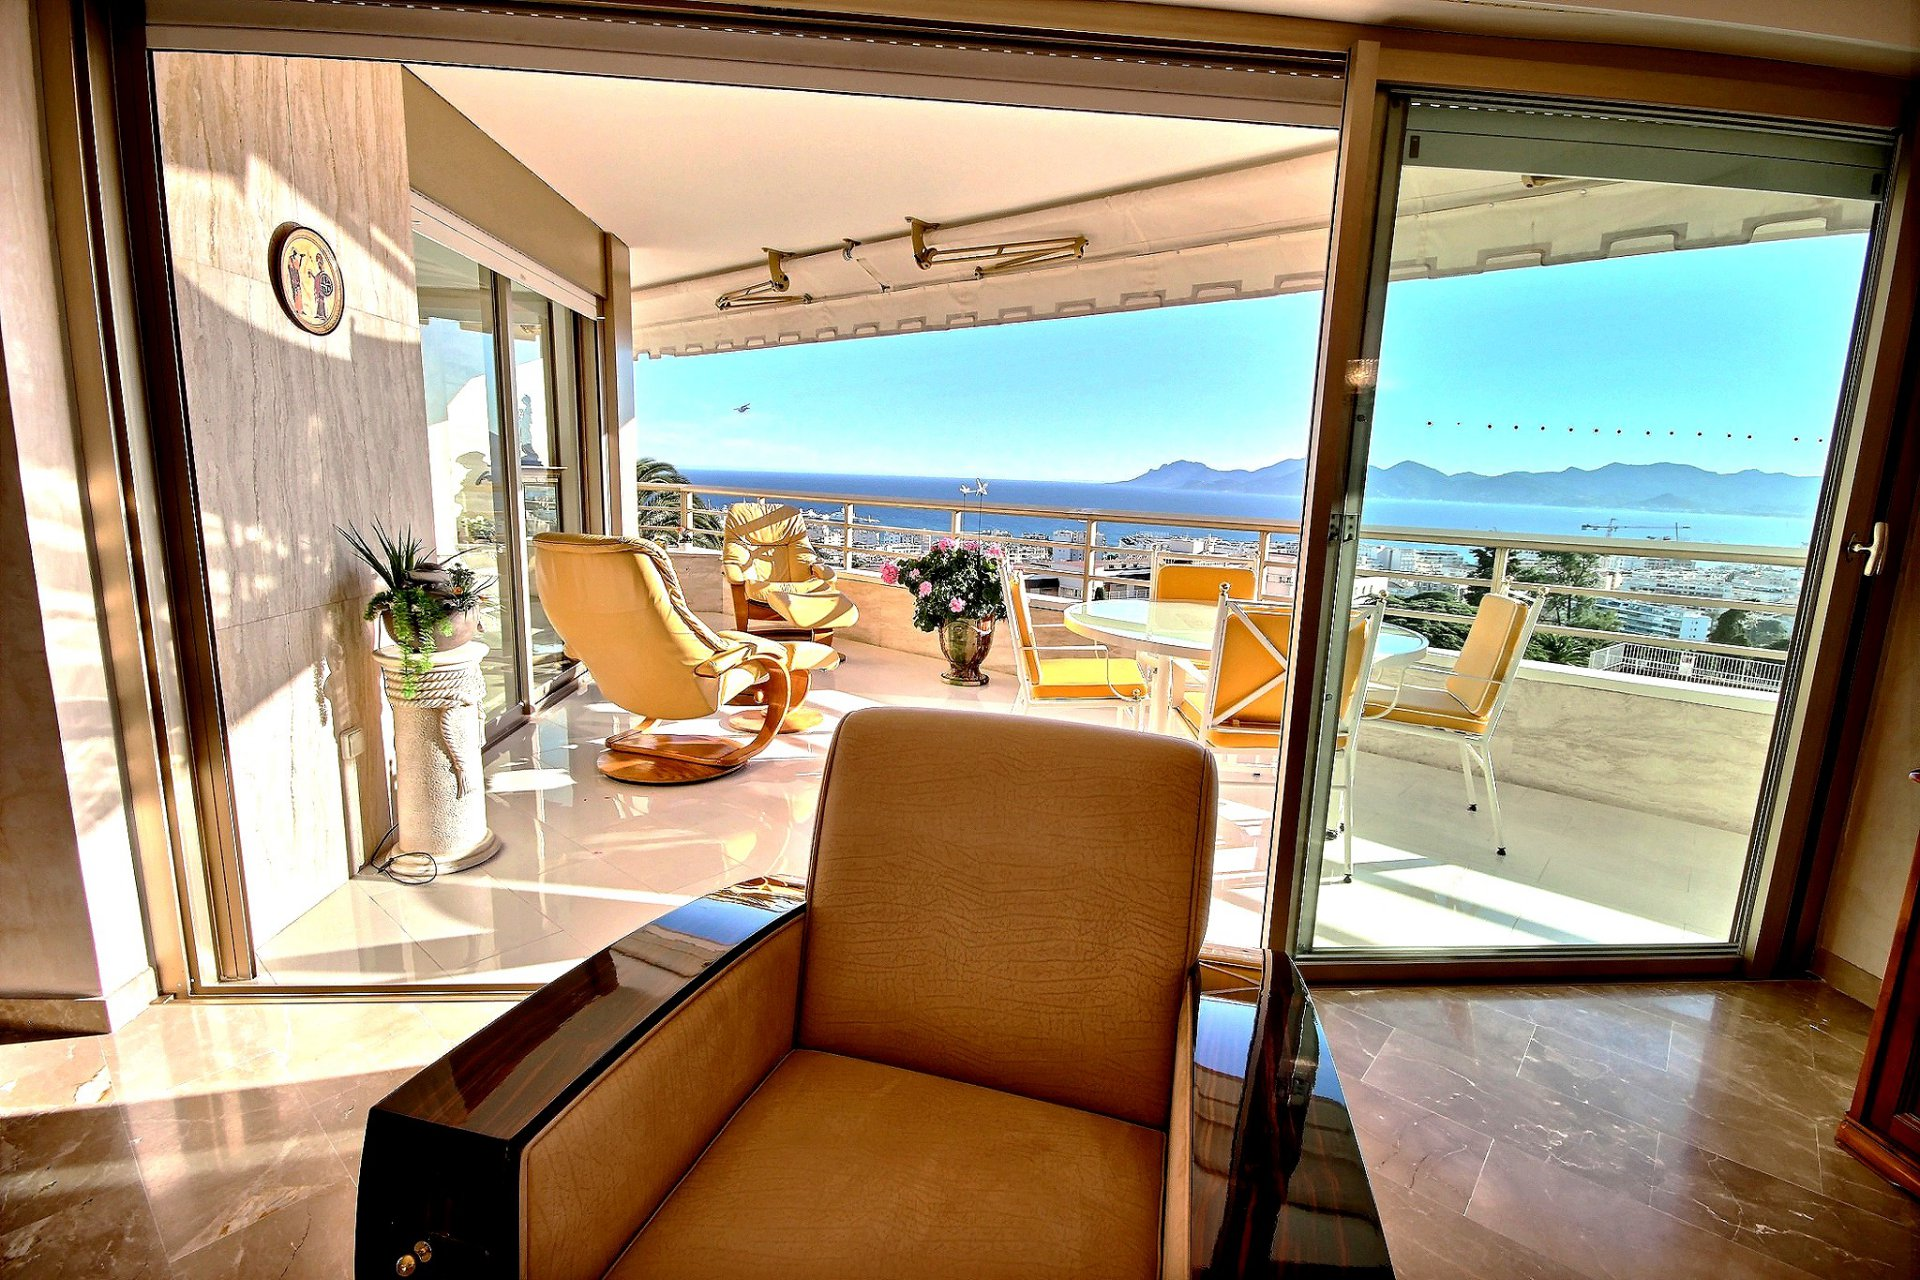 Beautiful property for sale in Cannes Californie with terrace sea view and swimming pool